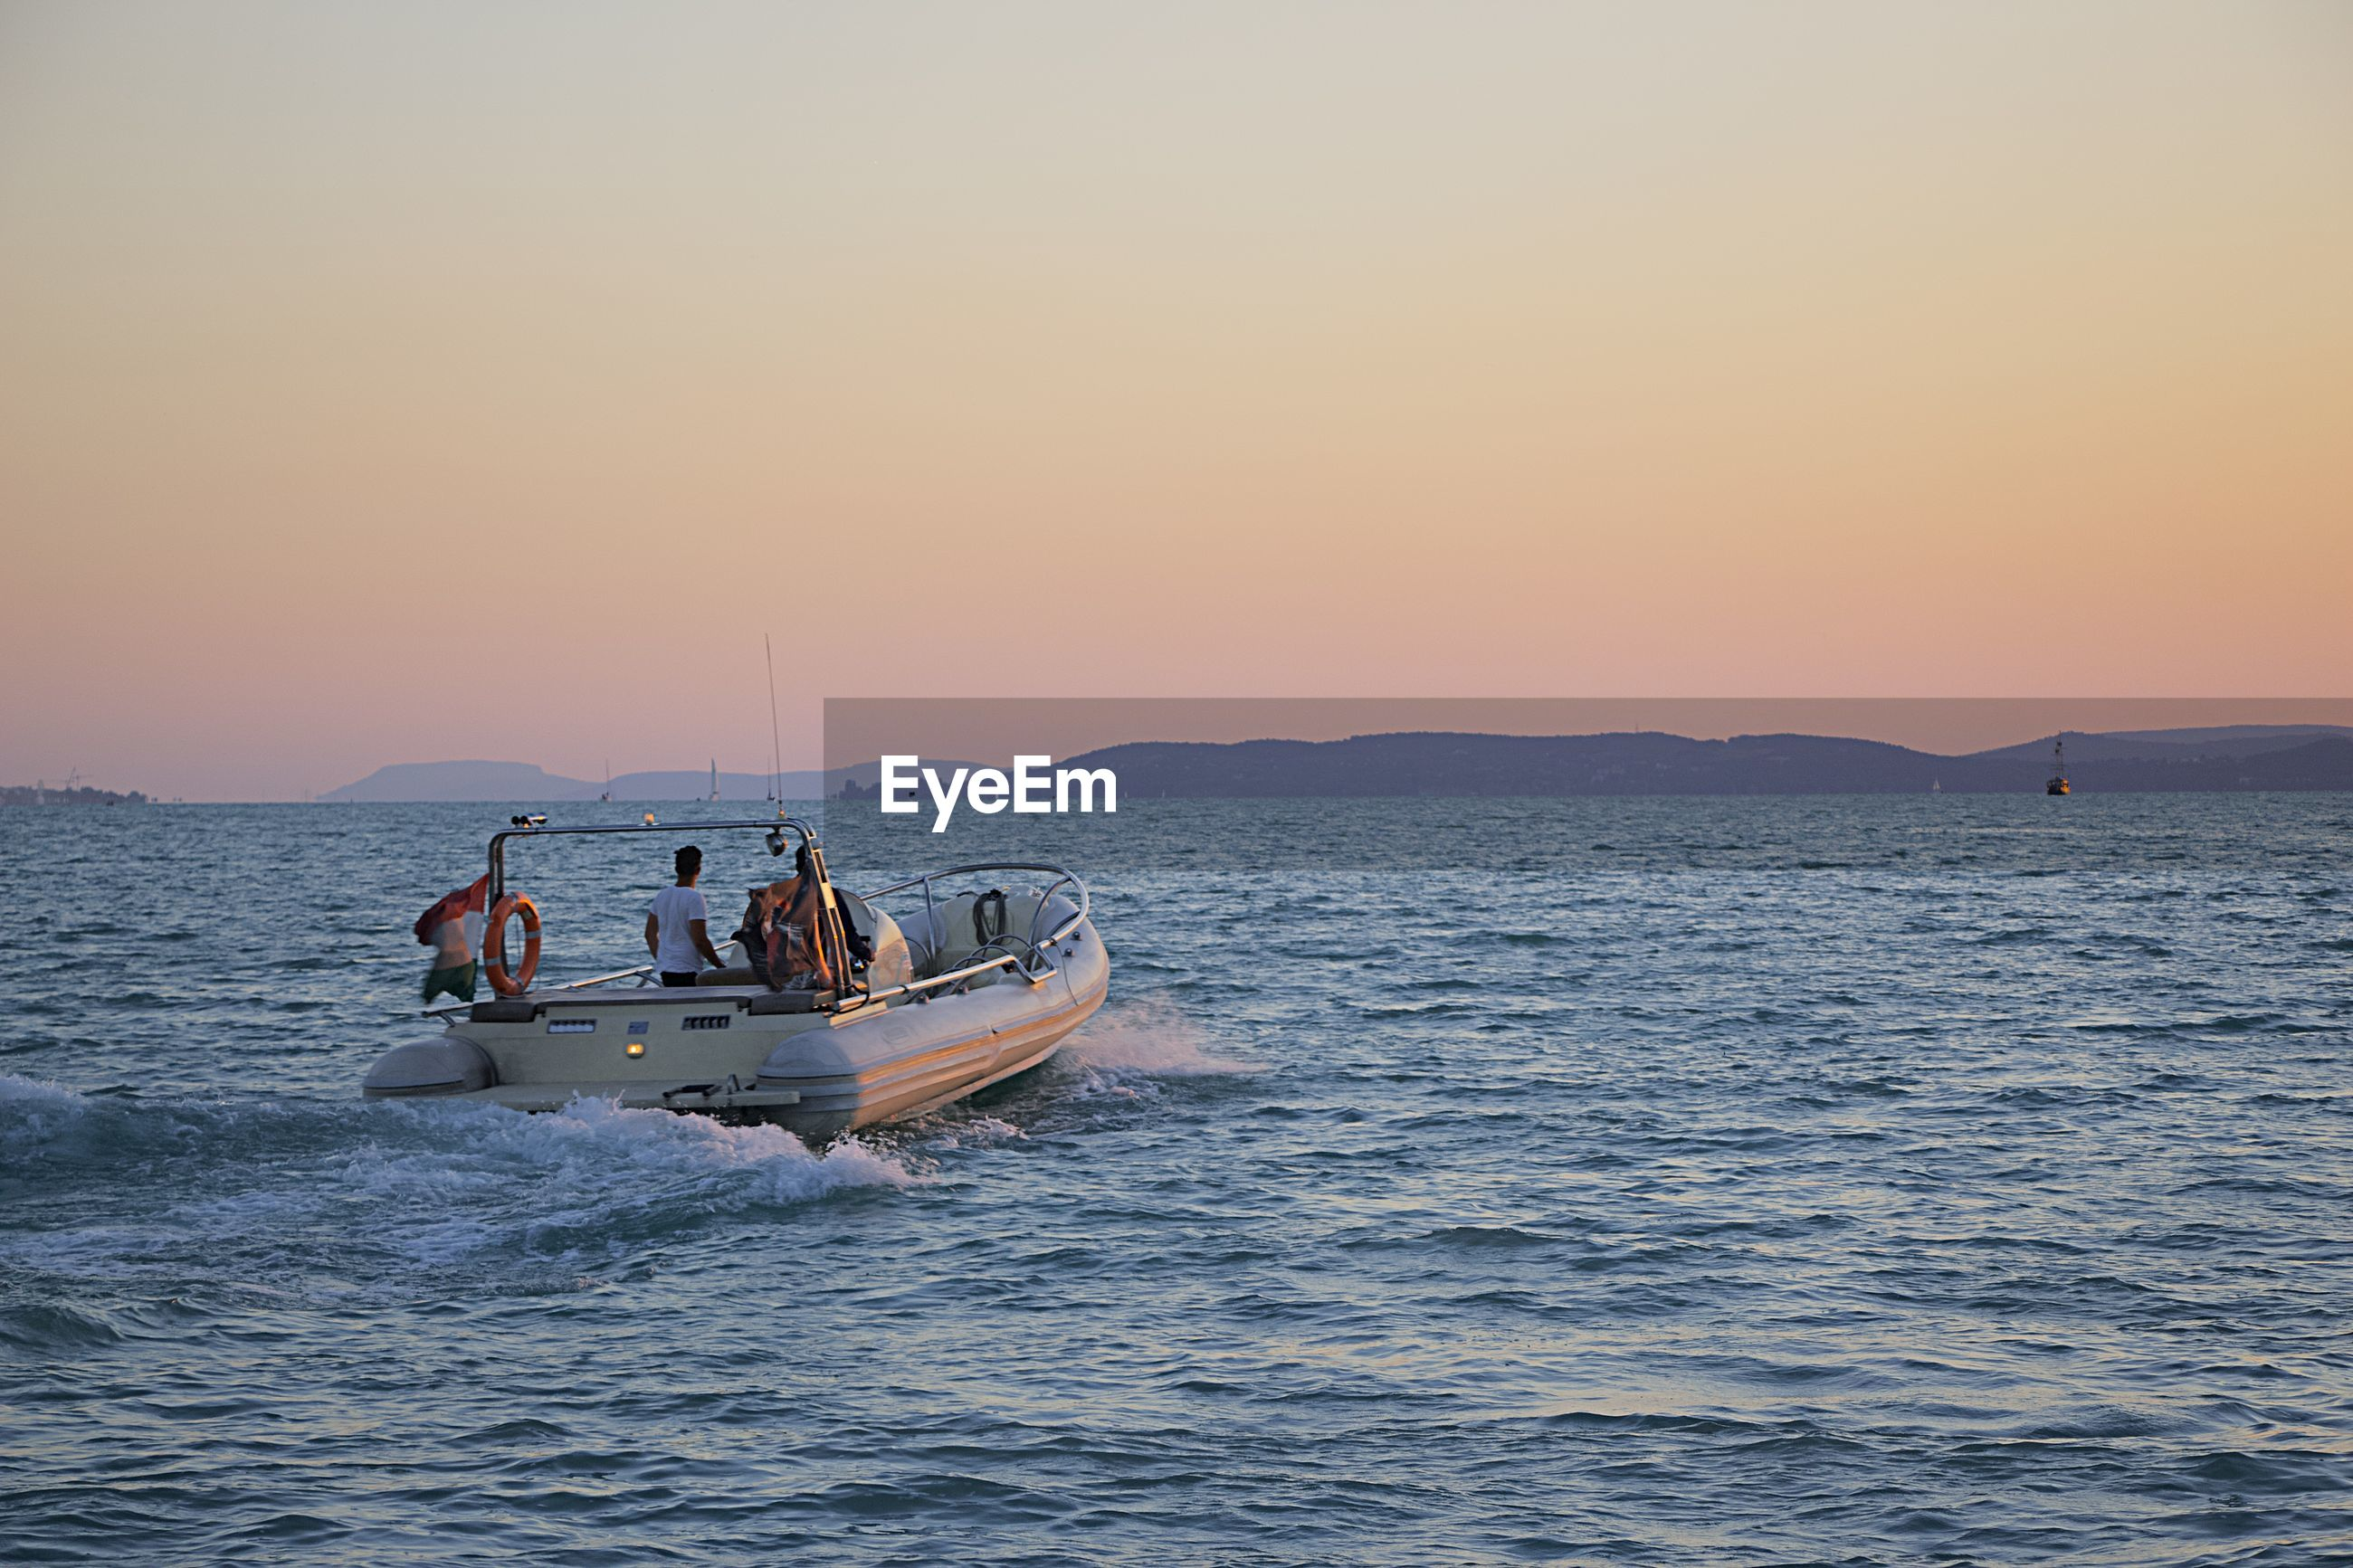 PEOPLE IN BOAT SAILING ON SEA AGAINST CLEAR SKY